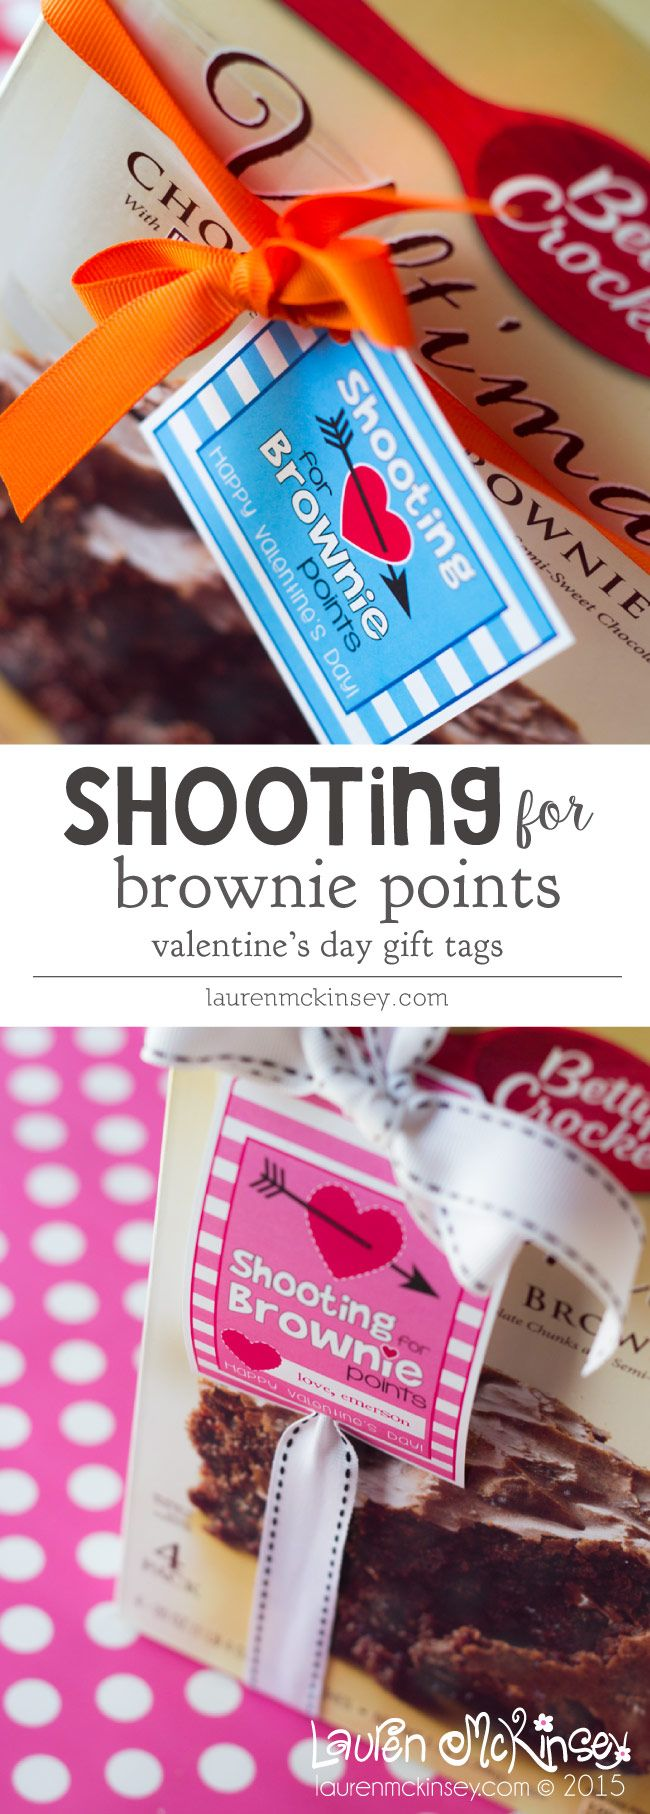 Shooting for brownie points for boys and girls :: Valentine's Day printable from Lauren McKinsey